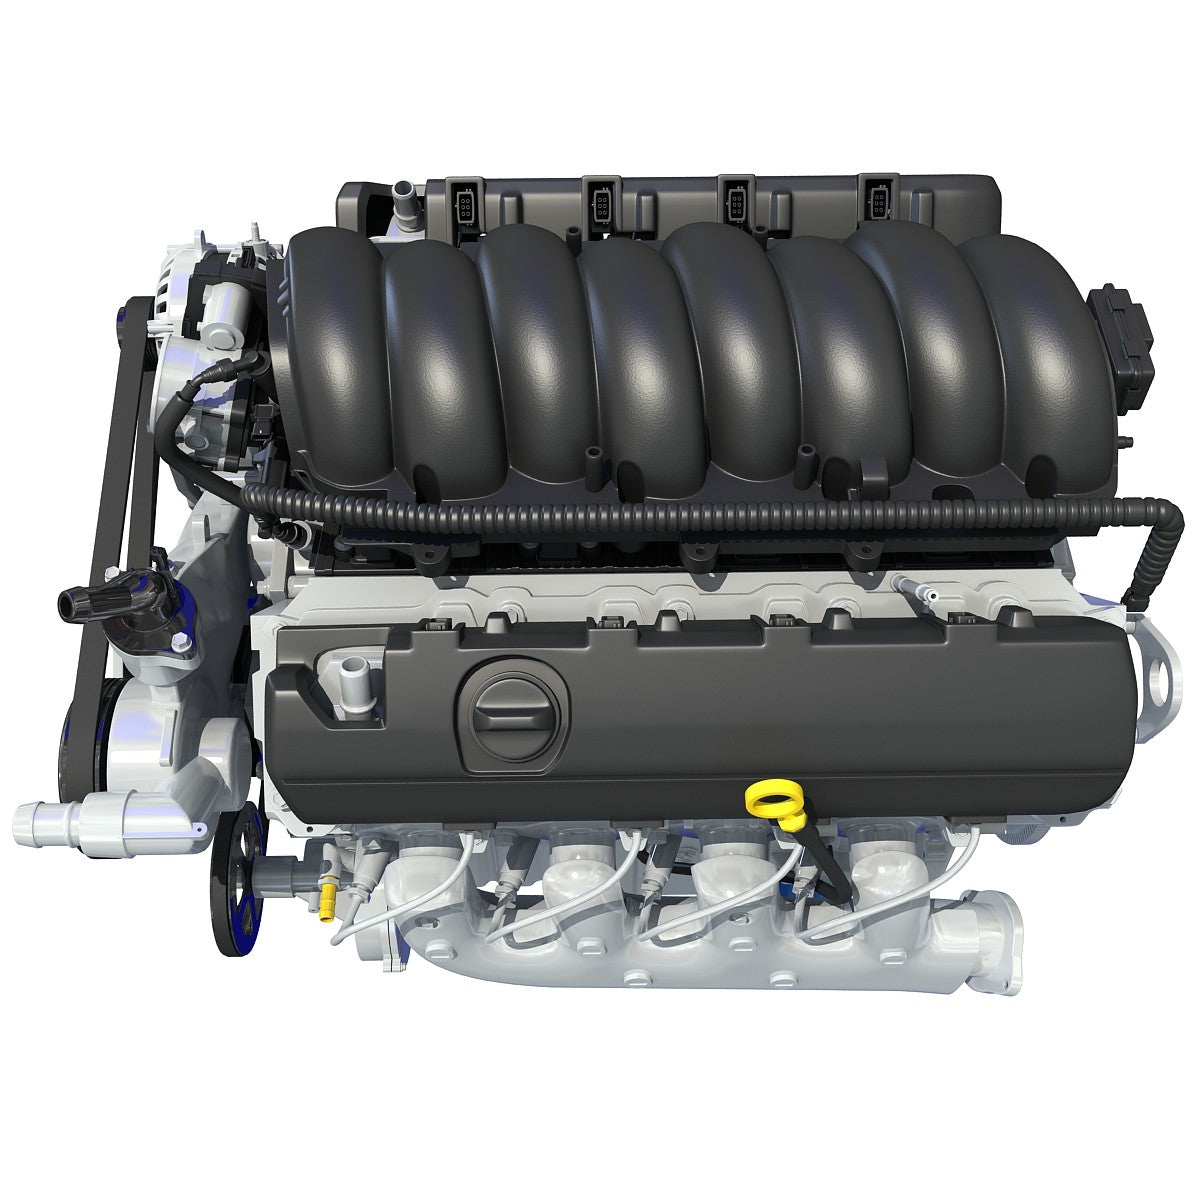 New V8 Chevrolet Silverado Engine